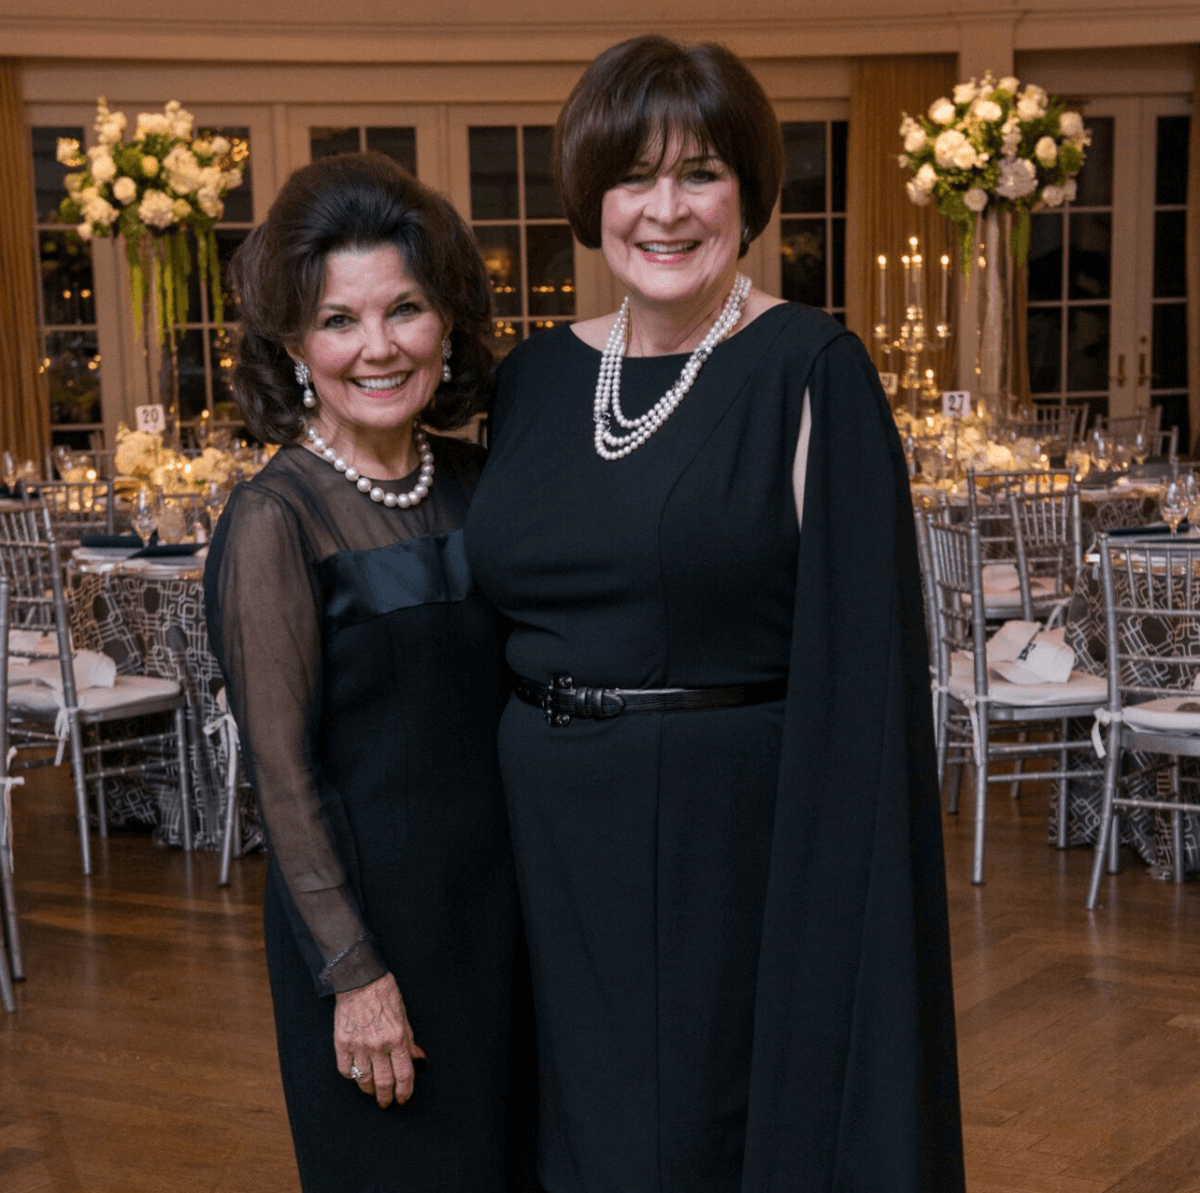 Linda McReynolds, Cynthia Allshouse at Rice Honors Gala